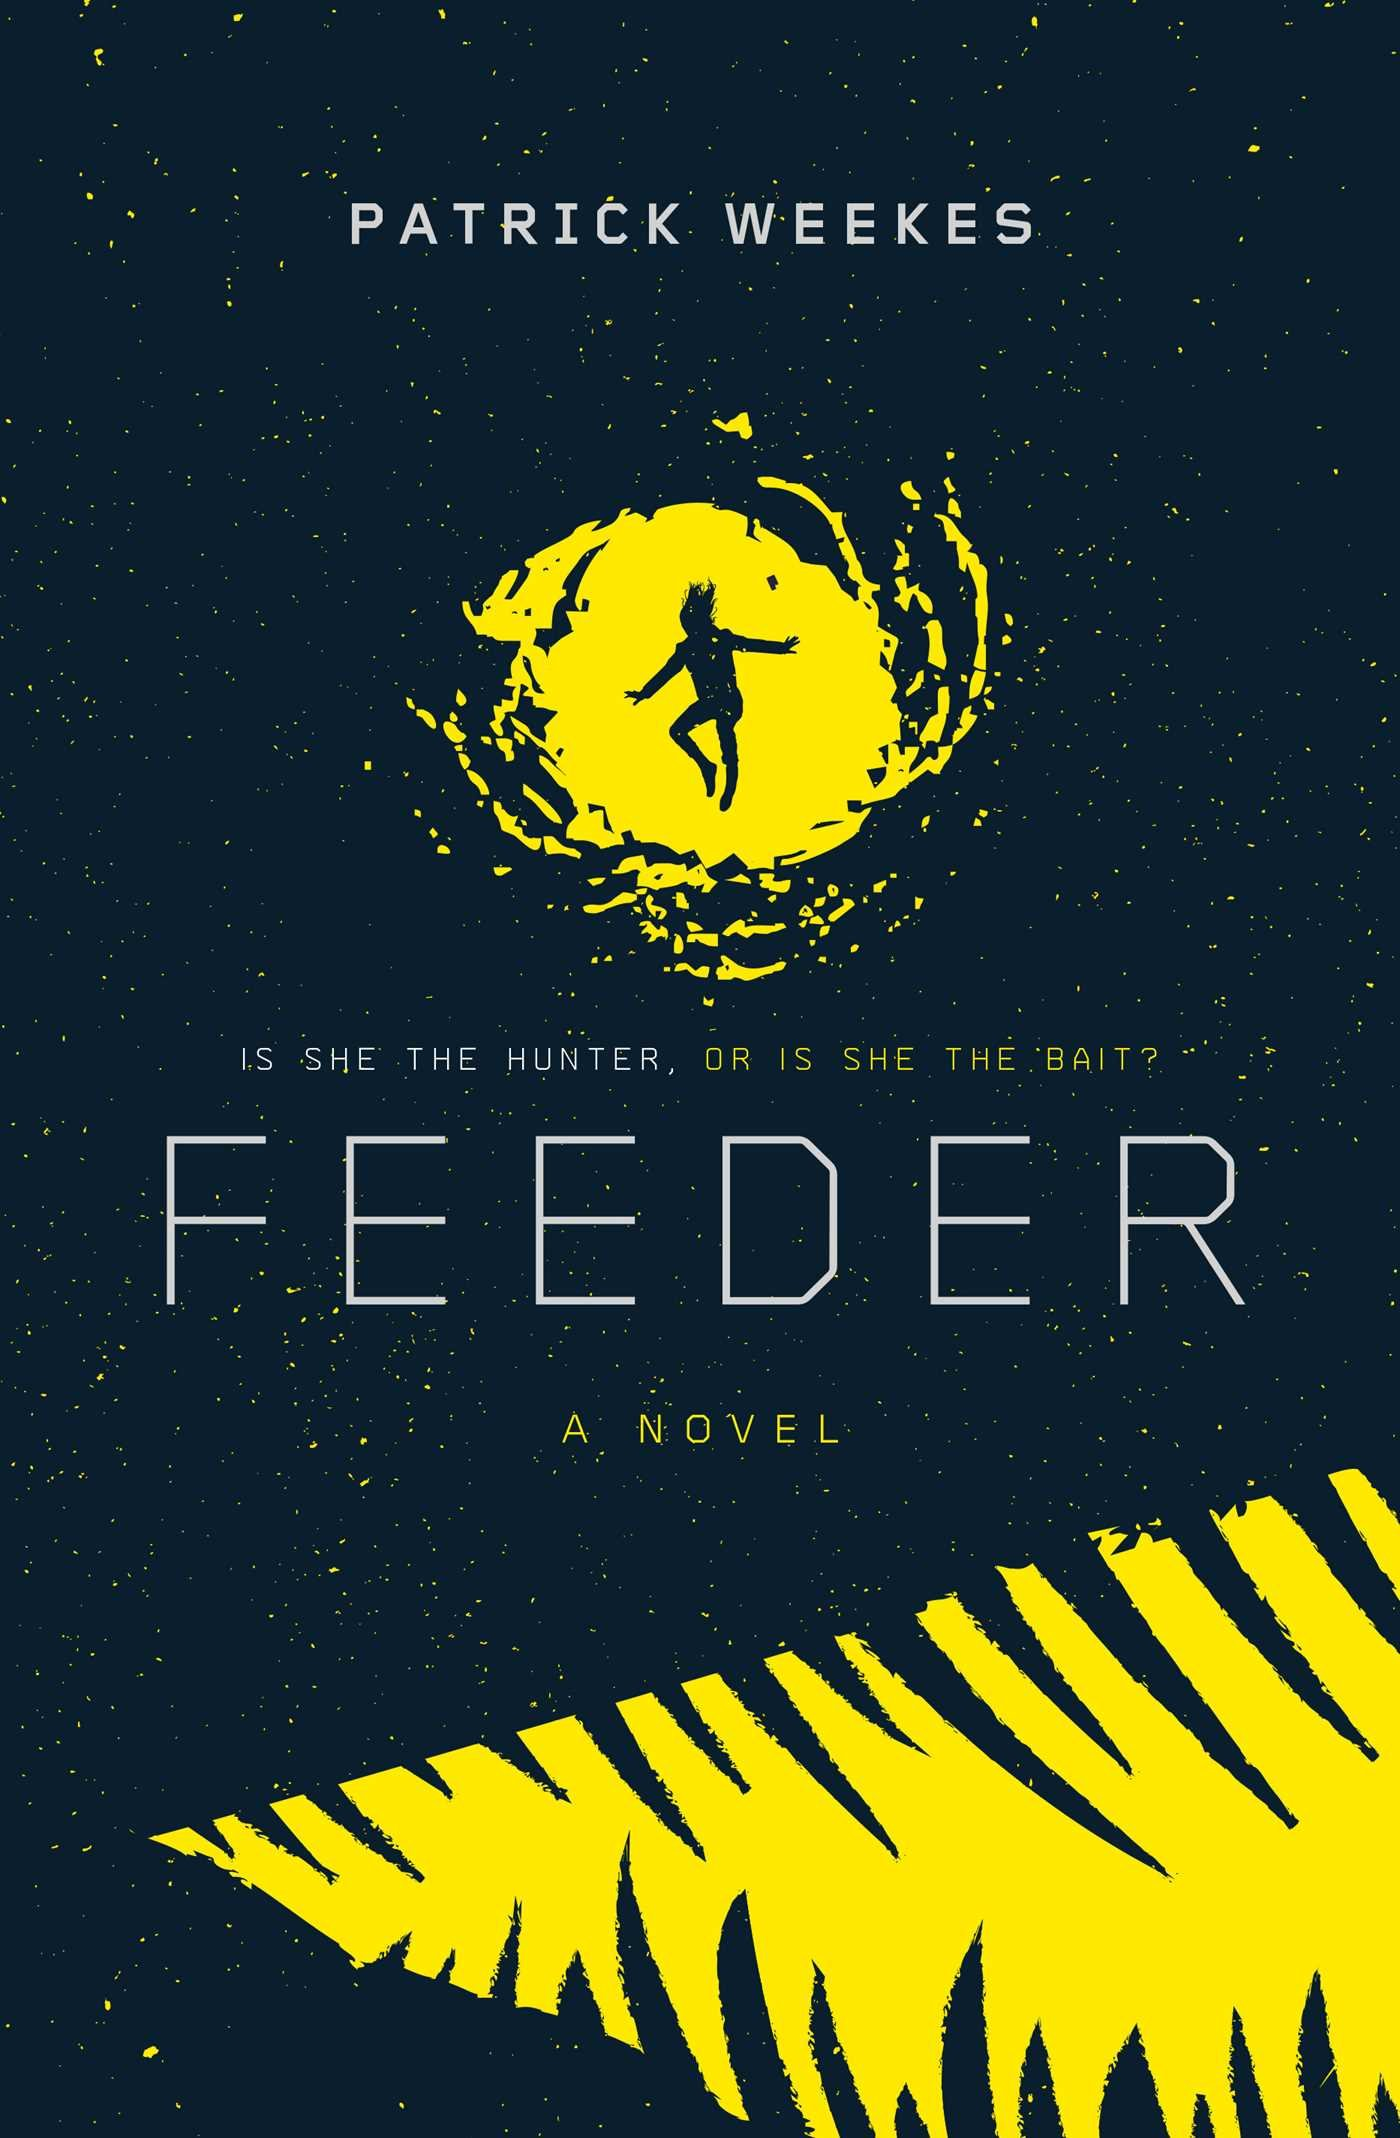 Amazon.com: Feeder (9781534400160): Weekes, Patrick: Books